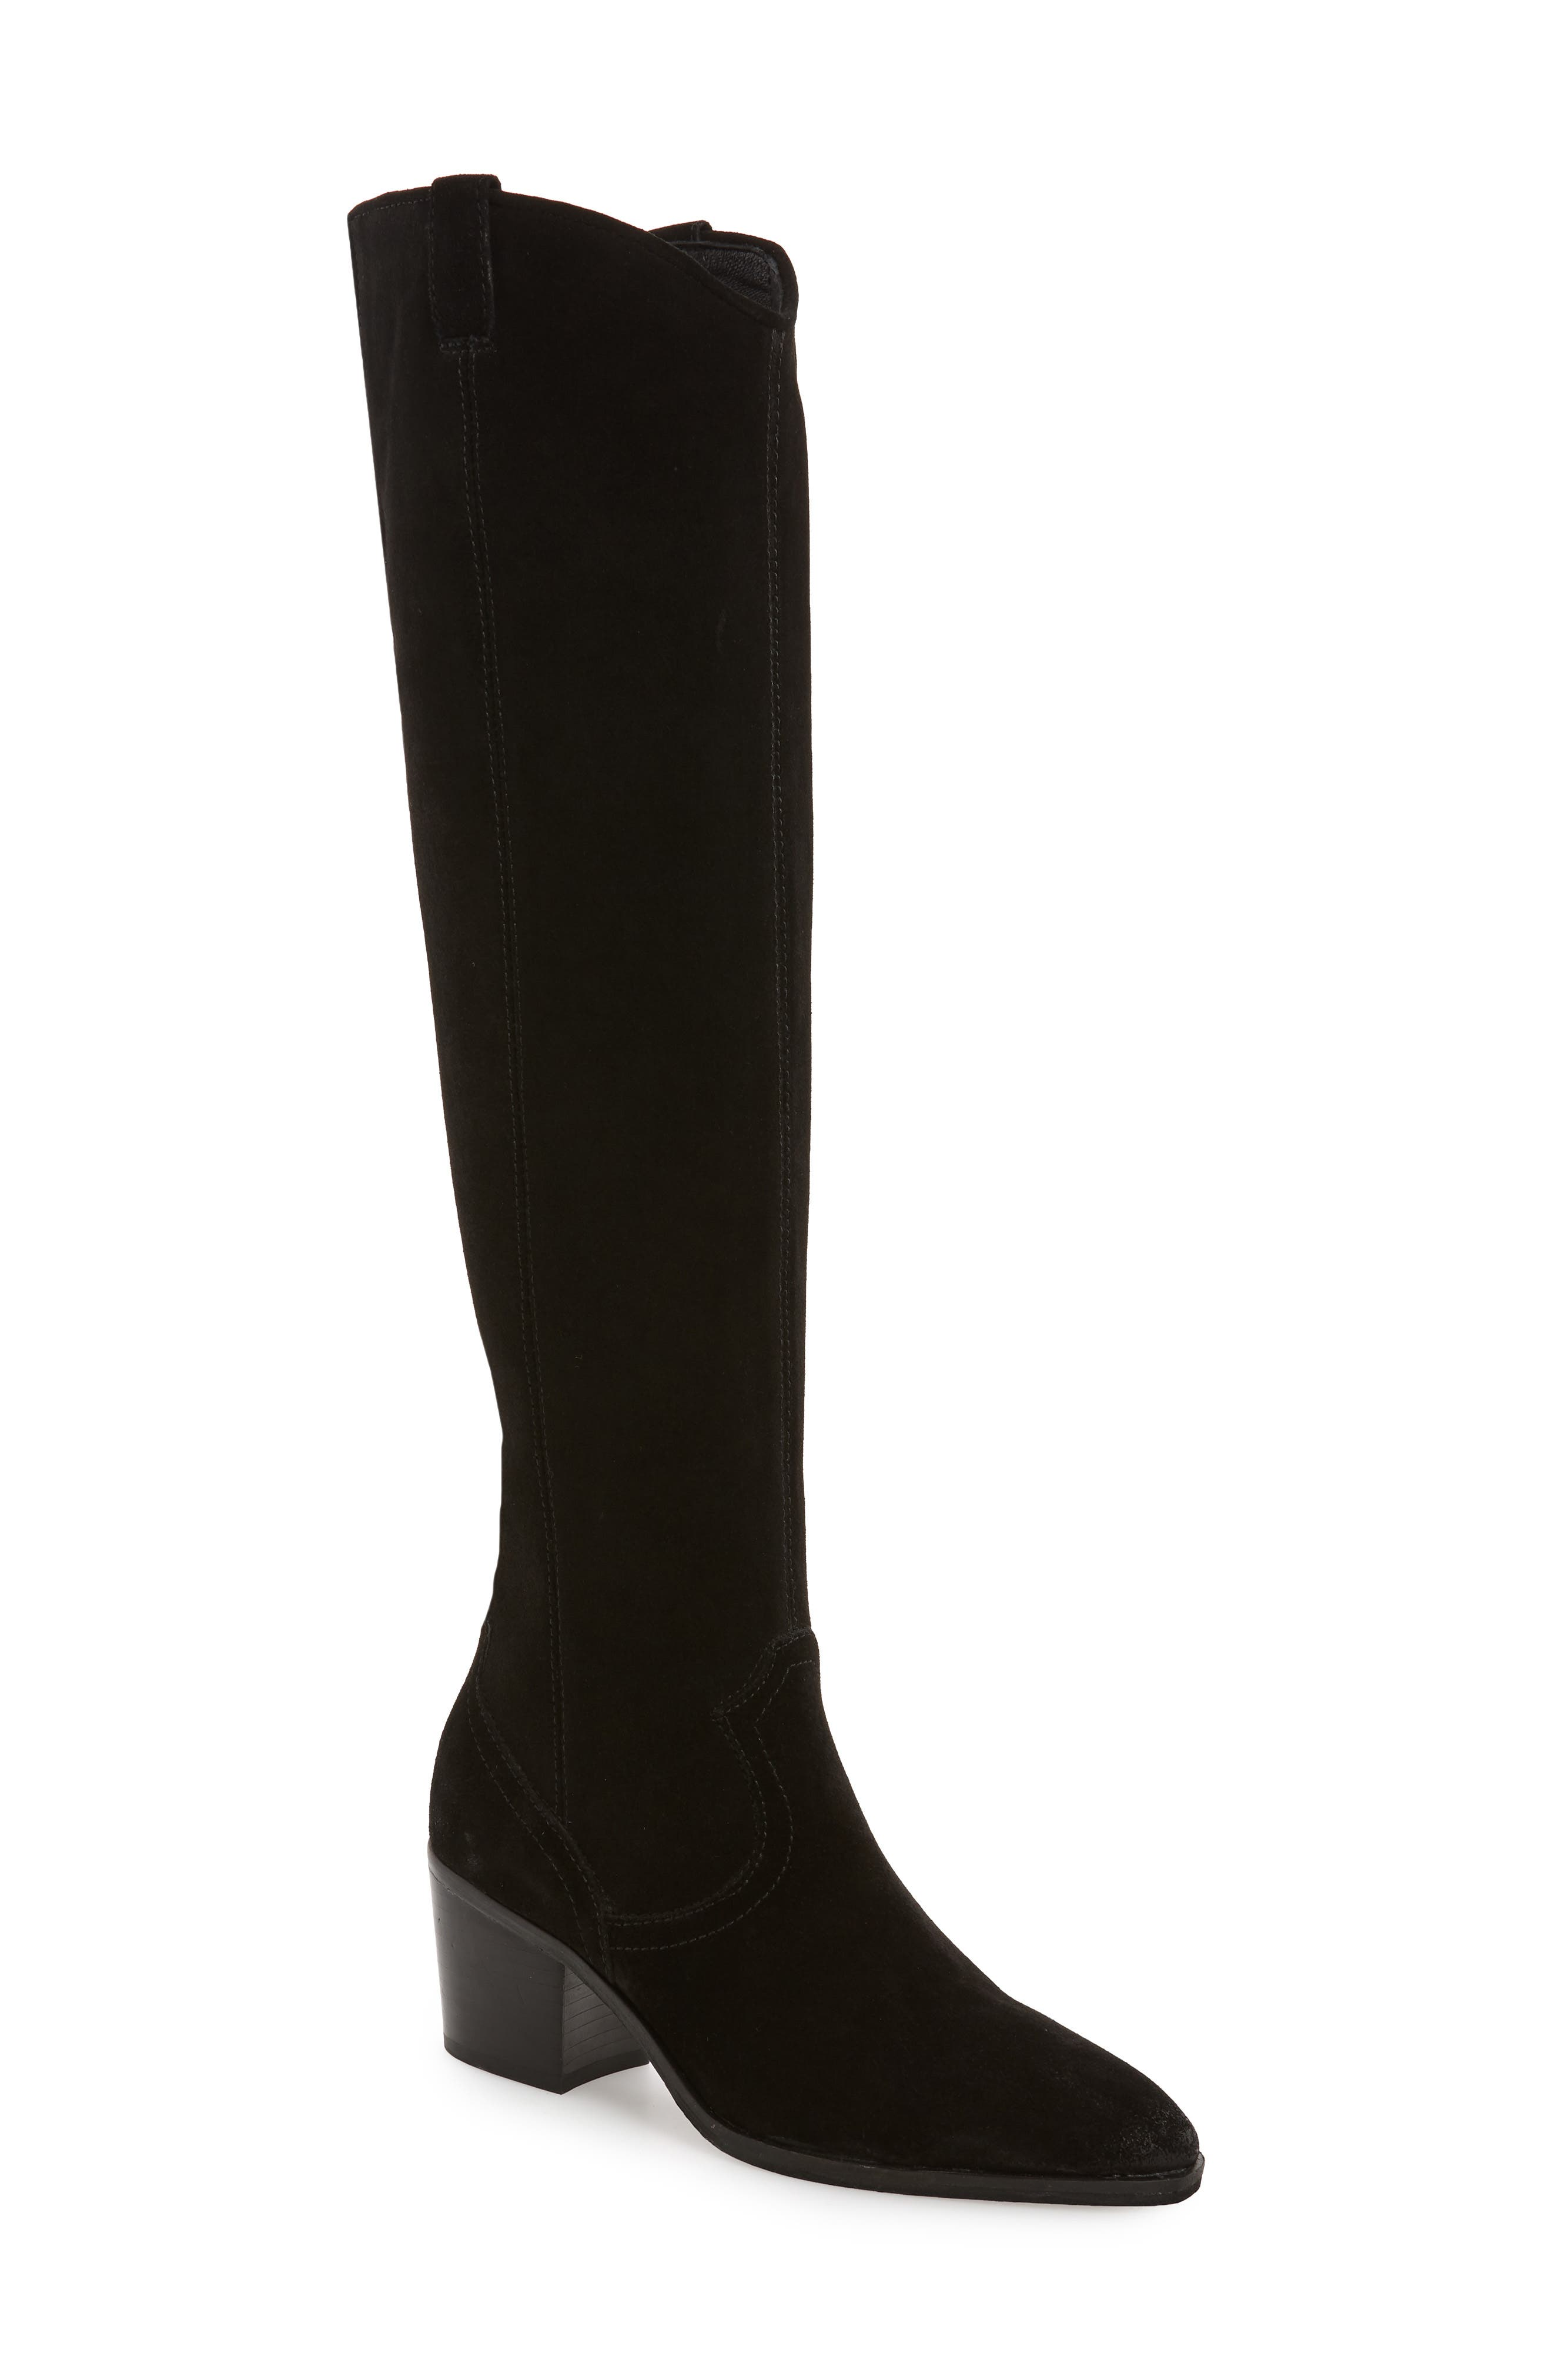 SBICCA Delano Over the Knee Boot, Main, color, BLACK LEATHER